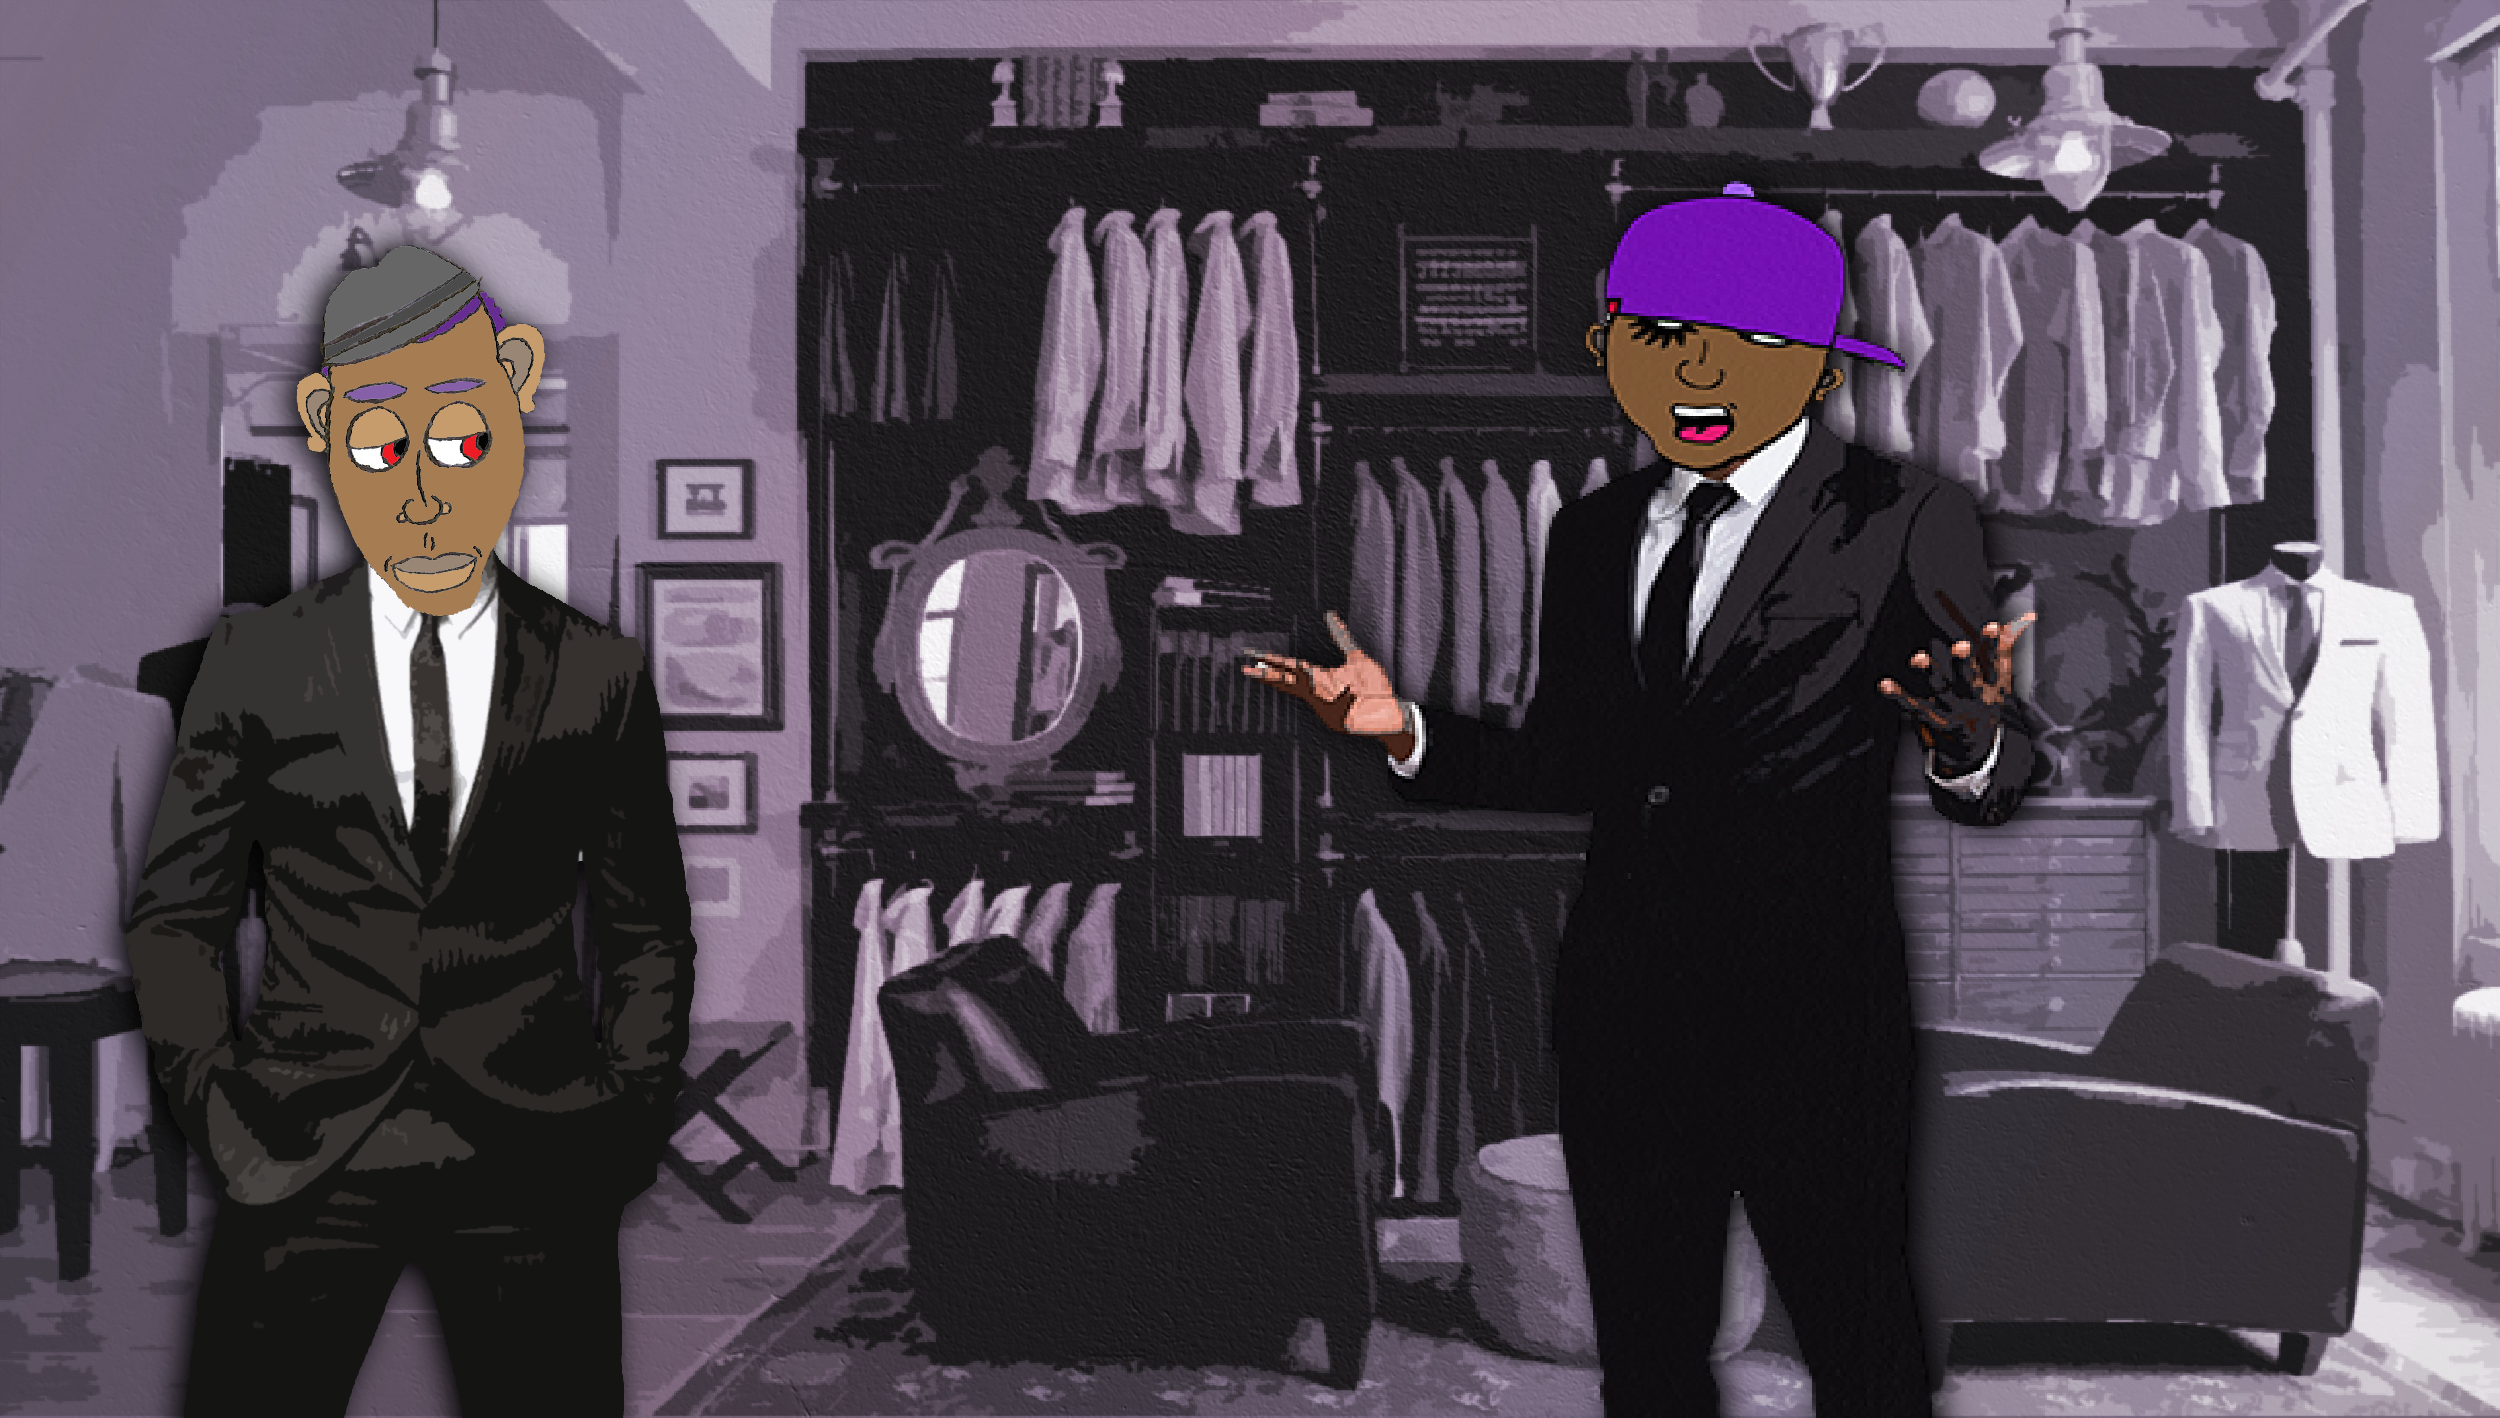 BlackDroog meeting with his Tailor.